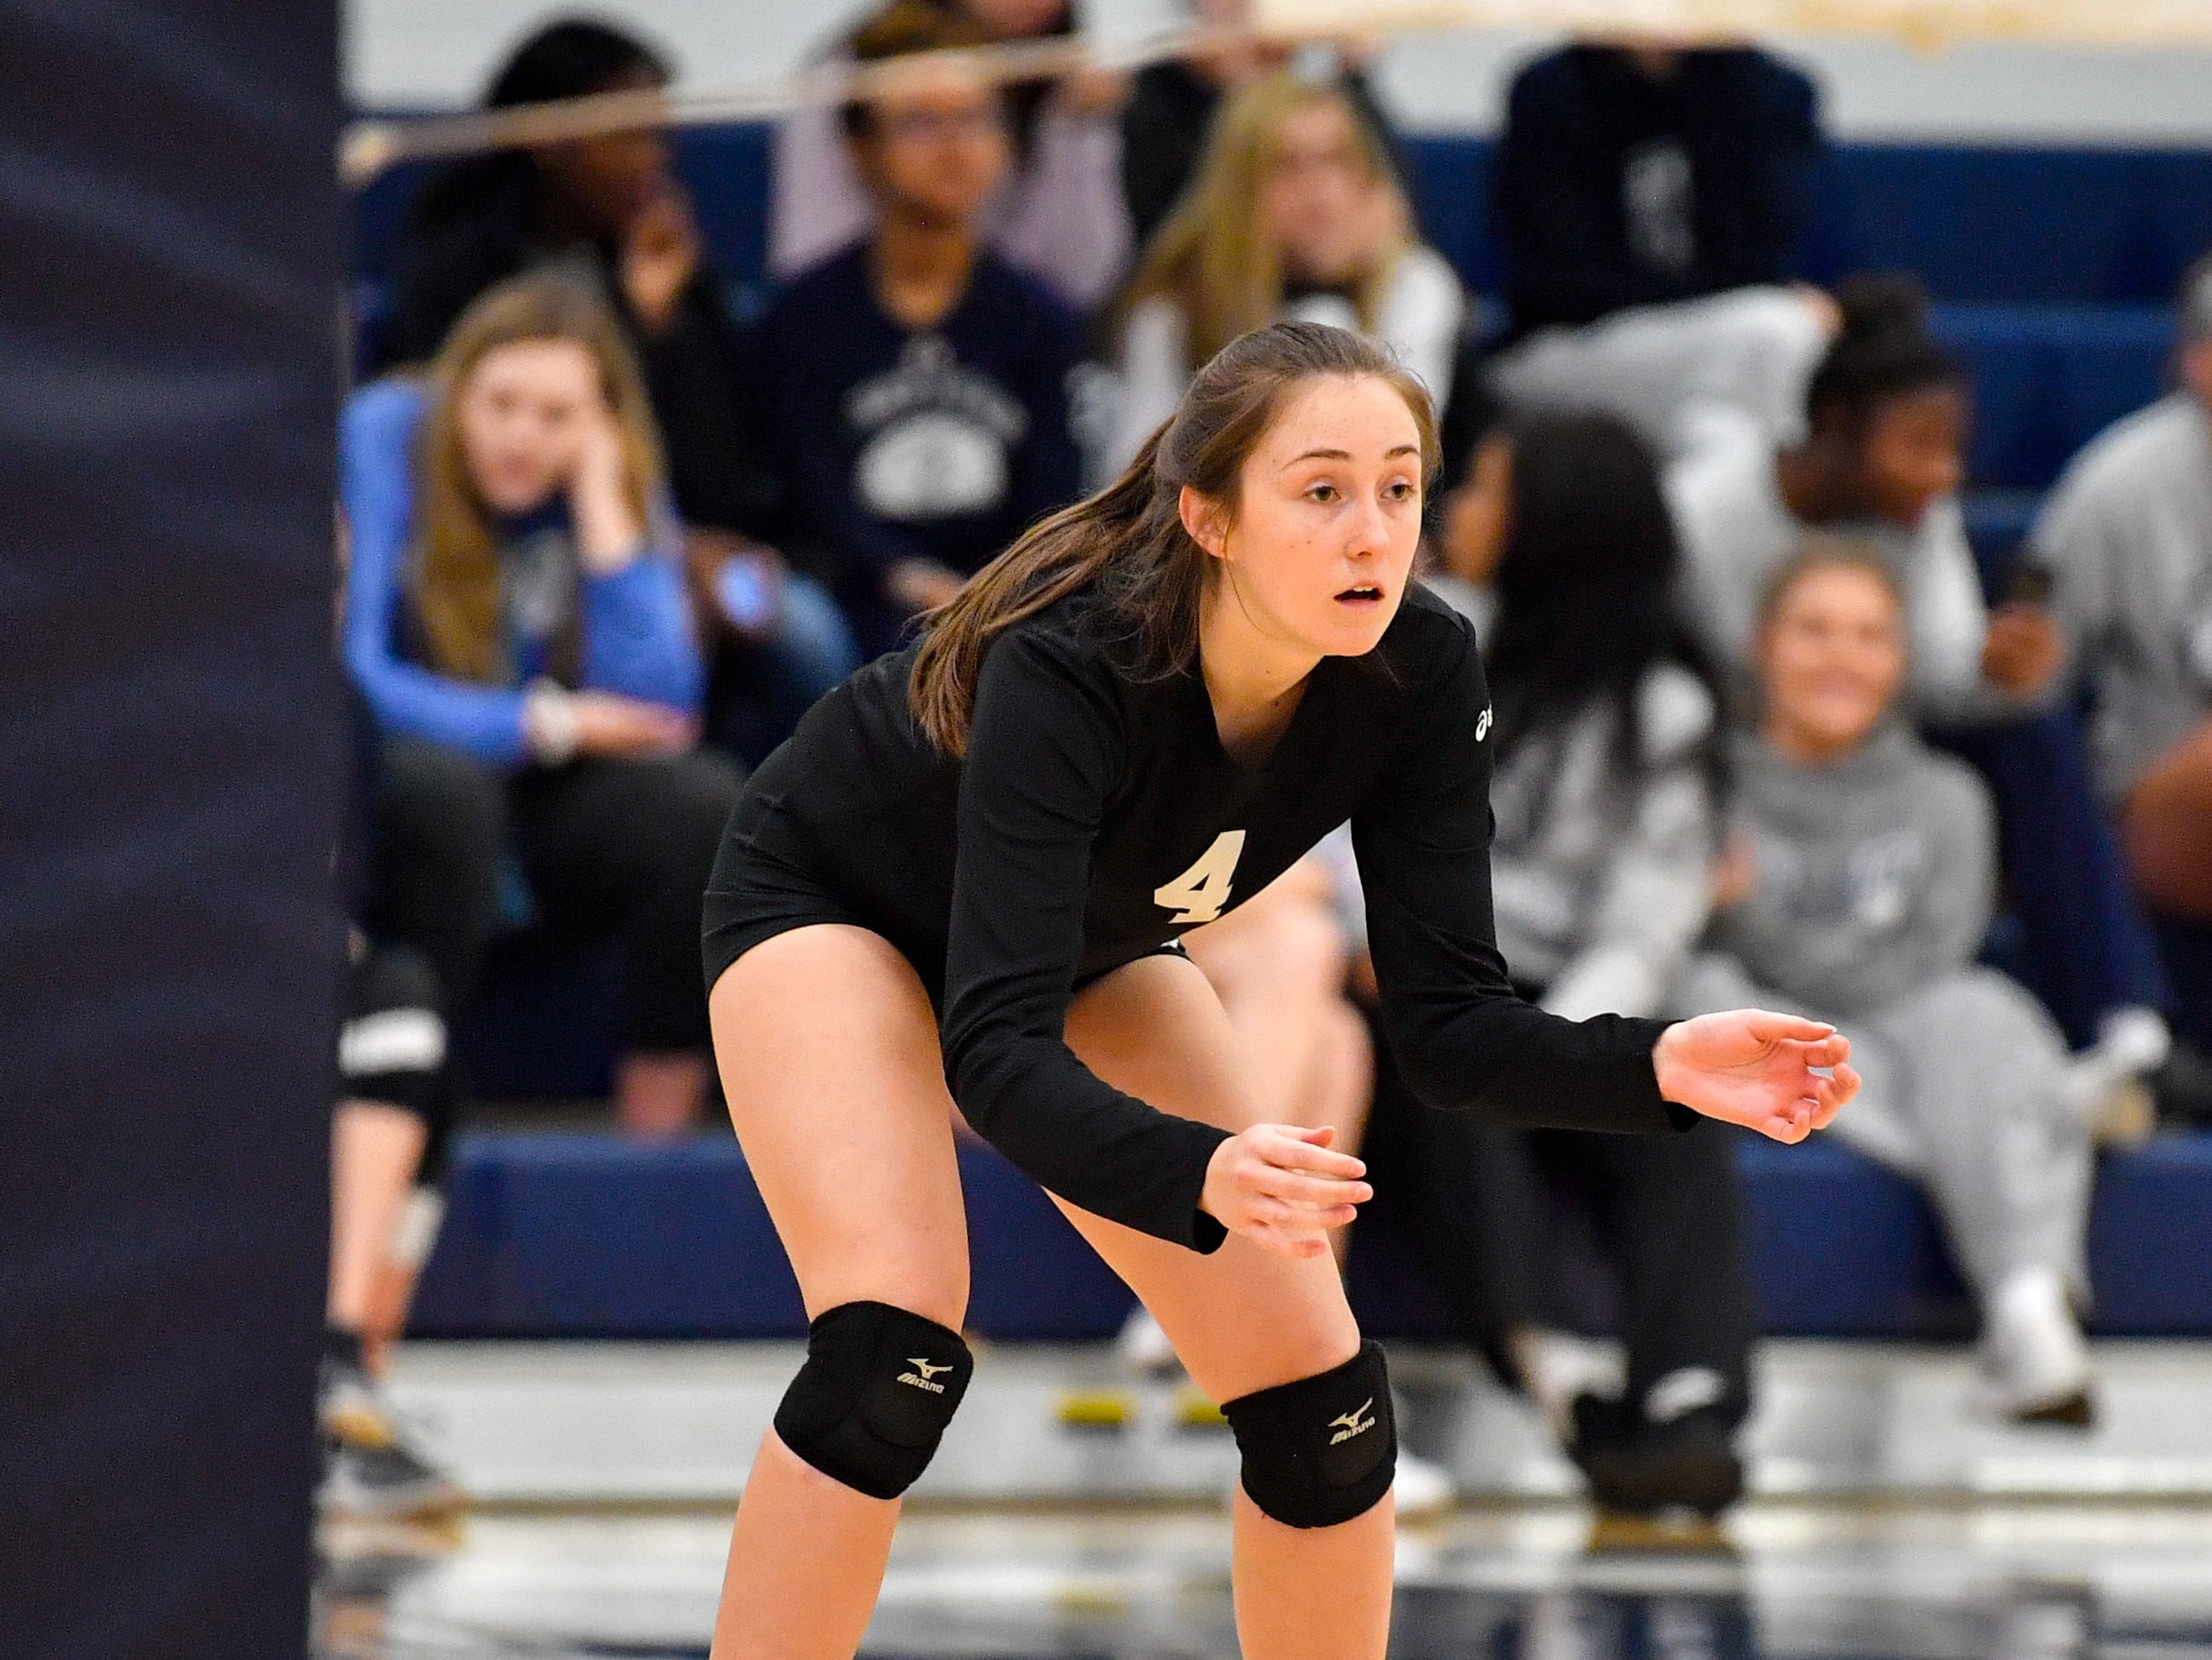 Maia Carney (4) prepares to receive the serve during the District 3 Class 3A girls' volleyball quarterfinals between Dover and York Suburban at West York High School, October 30, 2018. The Eagles defeated the Trojans 3-2.